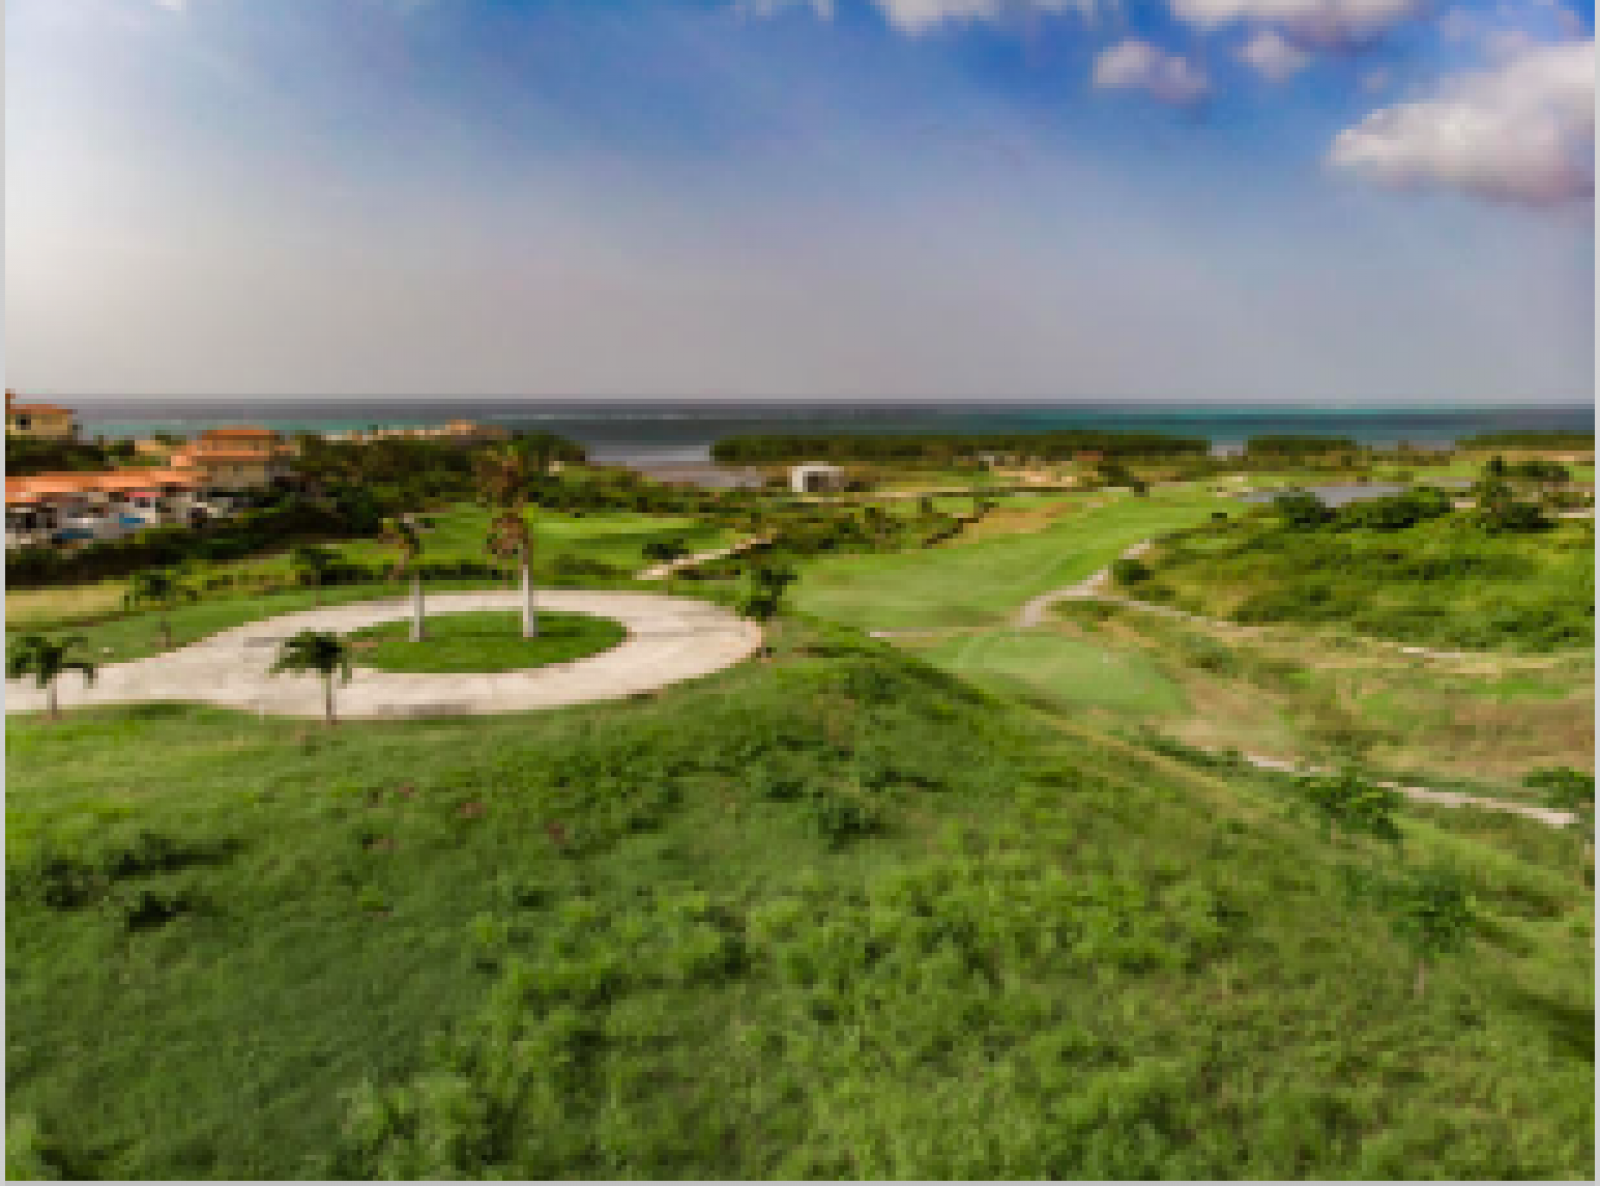 Paved roads and walk ways meandering throughout the golf course.